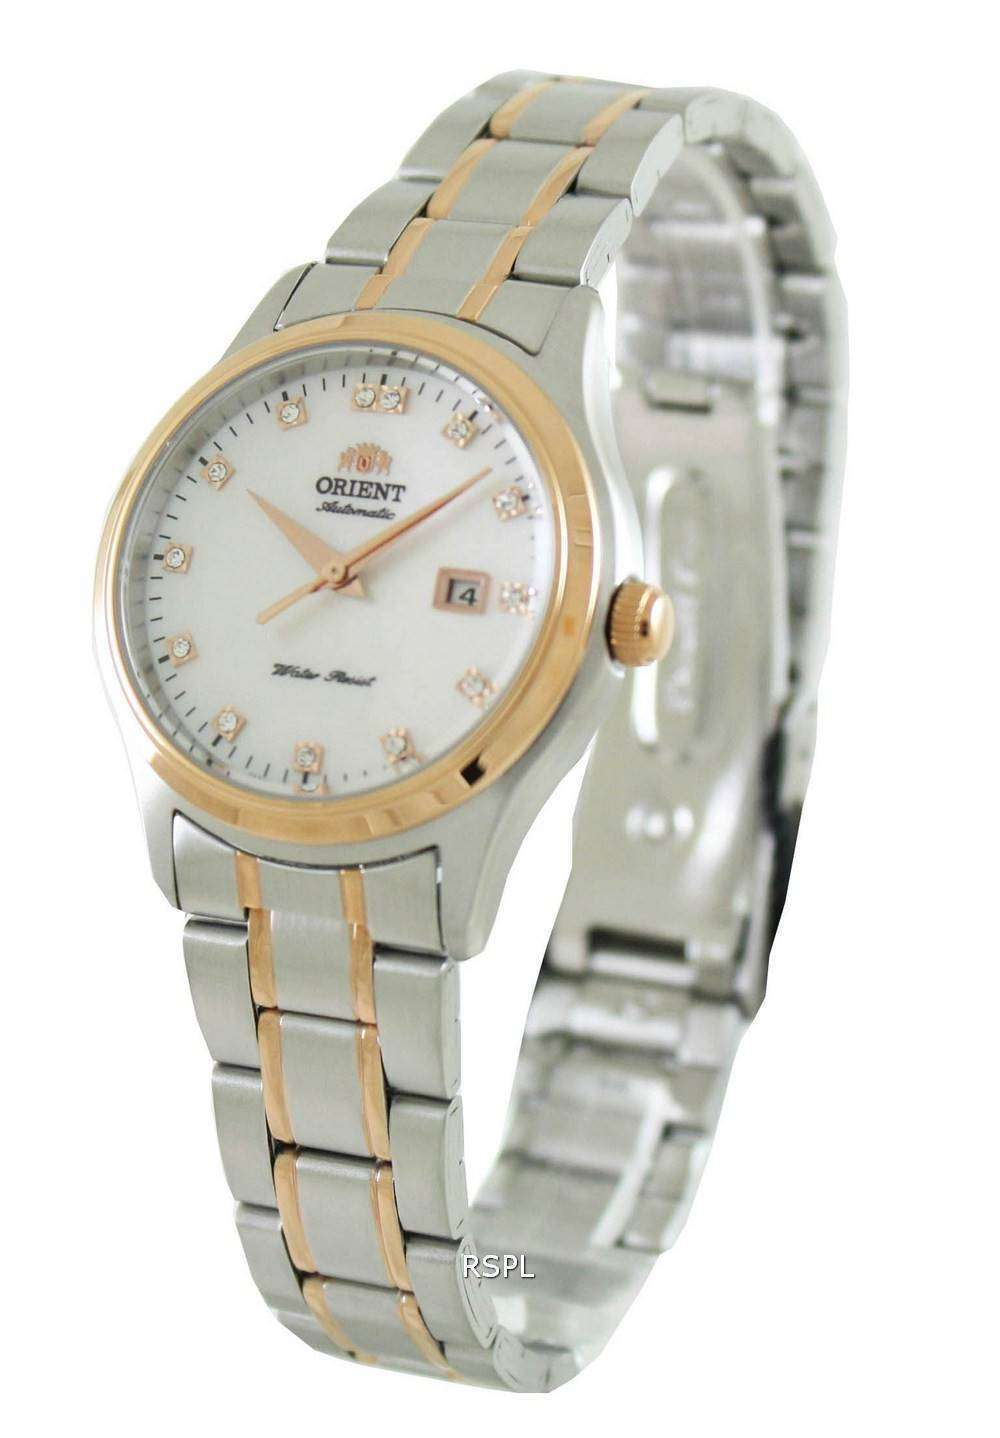 orient women Orient womens watches are noticeable for their impressive appearance glittery and utterly feminine, orient watches for women pursue beauty and elegance at the same time, which makes every single model suitable for multiple outfits for multiple occasions, sometimes even the extremes many of these .